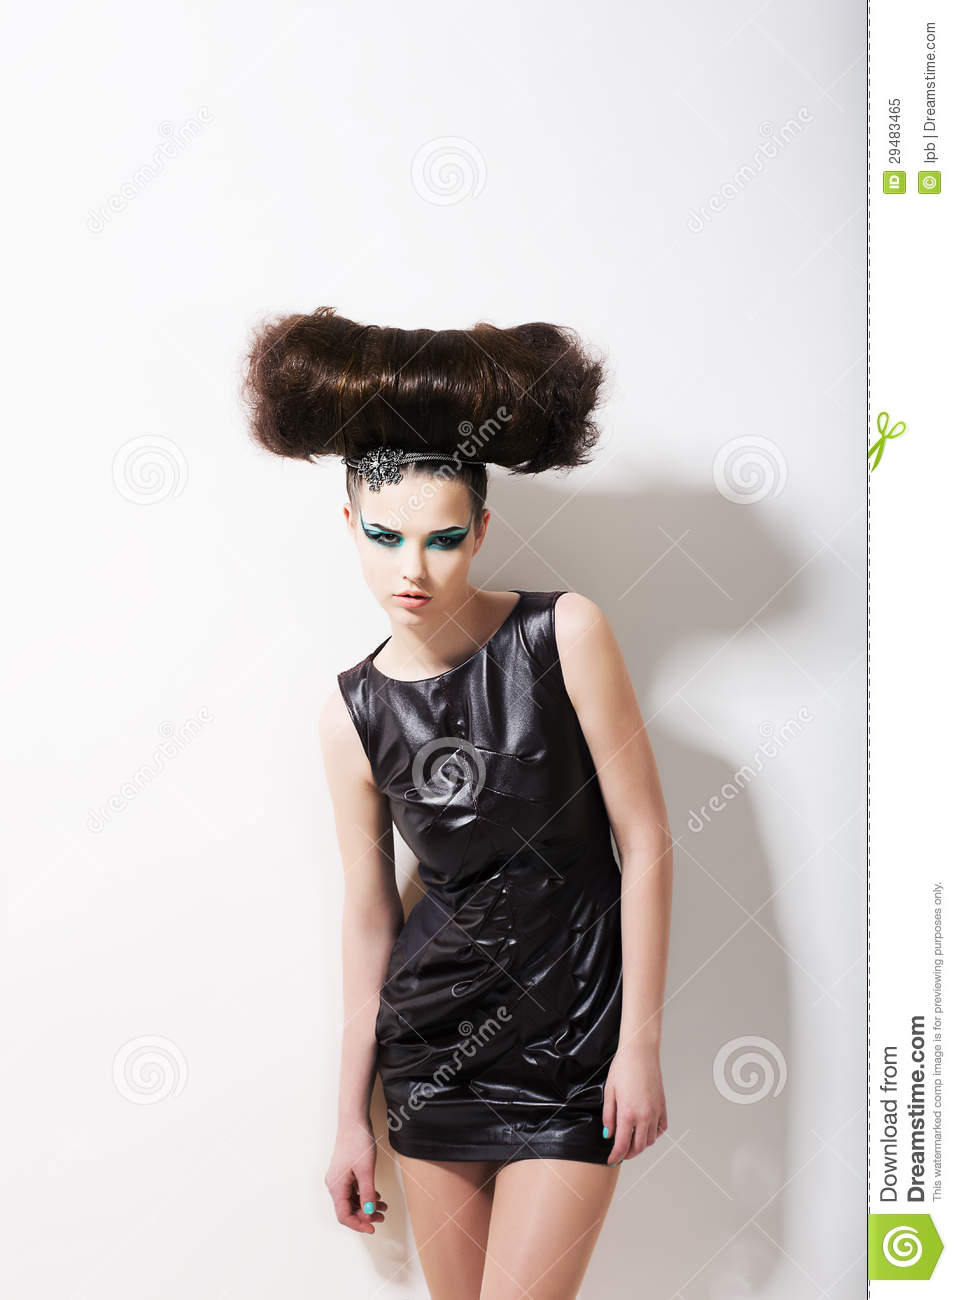 modern style funny glamorous fashion model with punk coiffure creativity stock image image. Black Bedroom Furniture Sets. Home Design Ideas